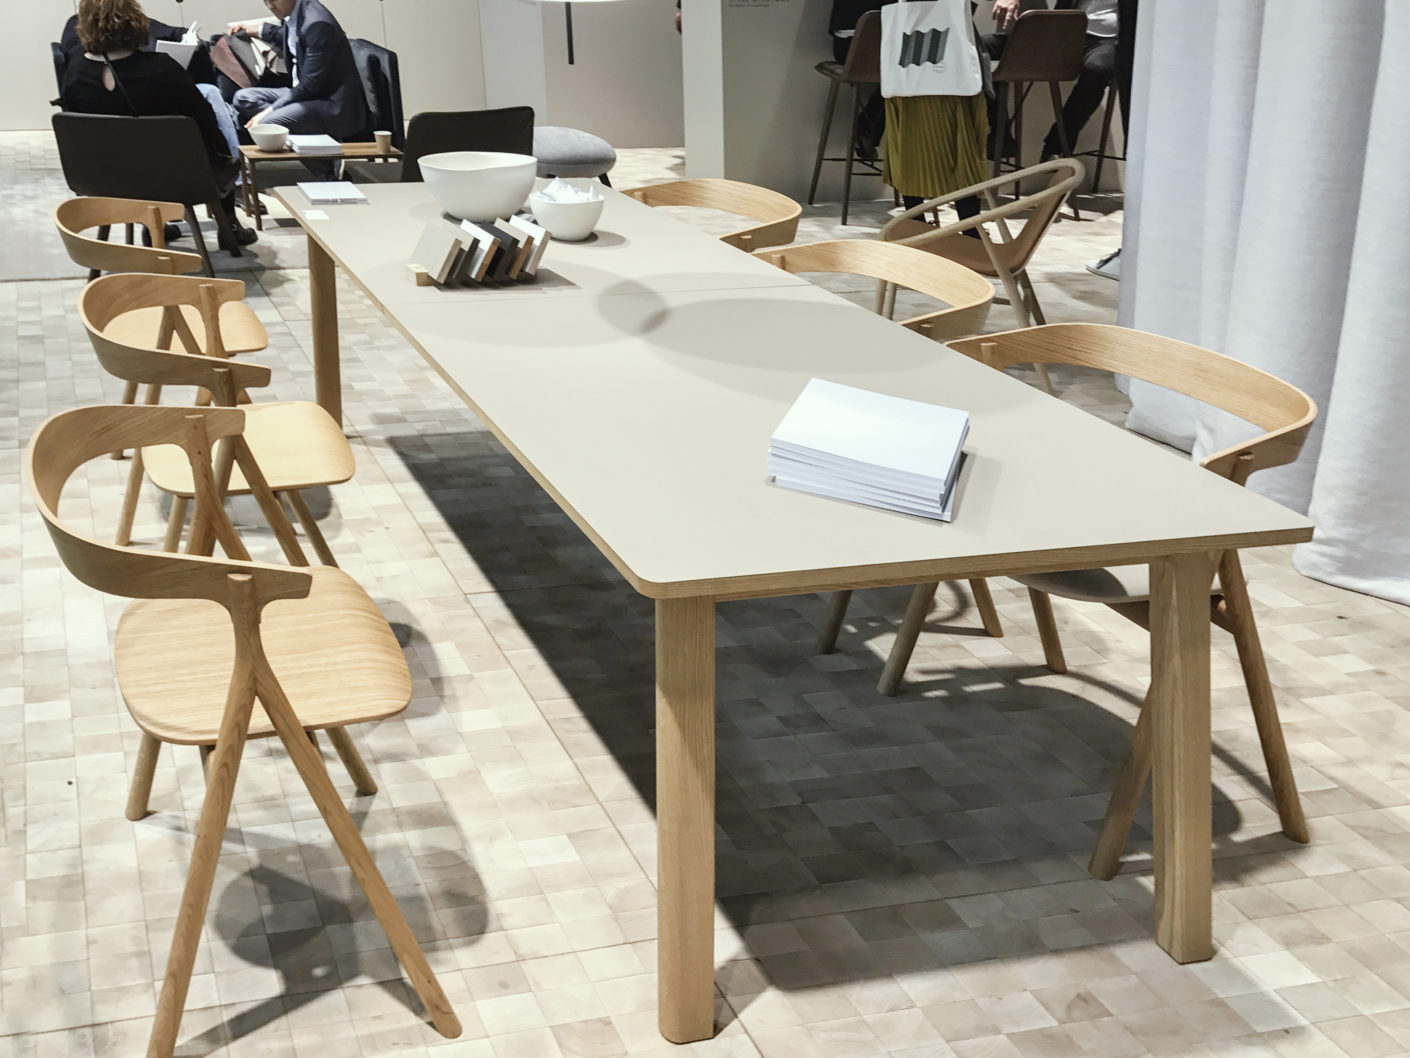 Stockholm Furniture and Light Fair 2018, Fredericia, Ana, Yksi, Stylepark